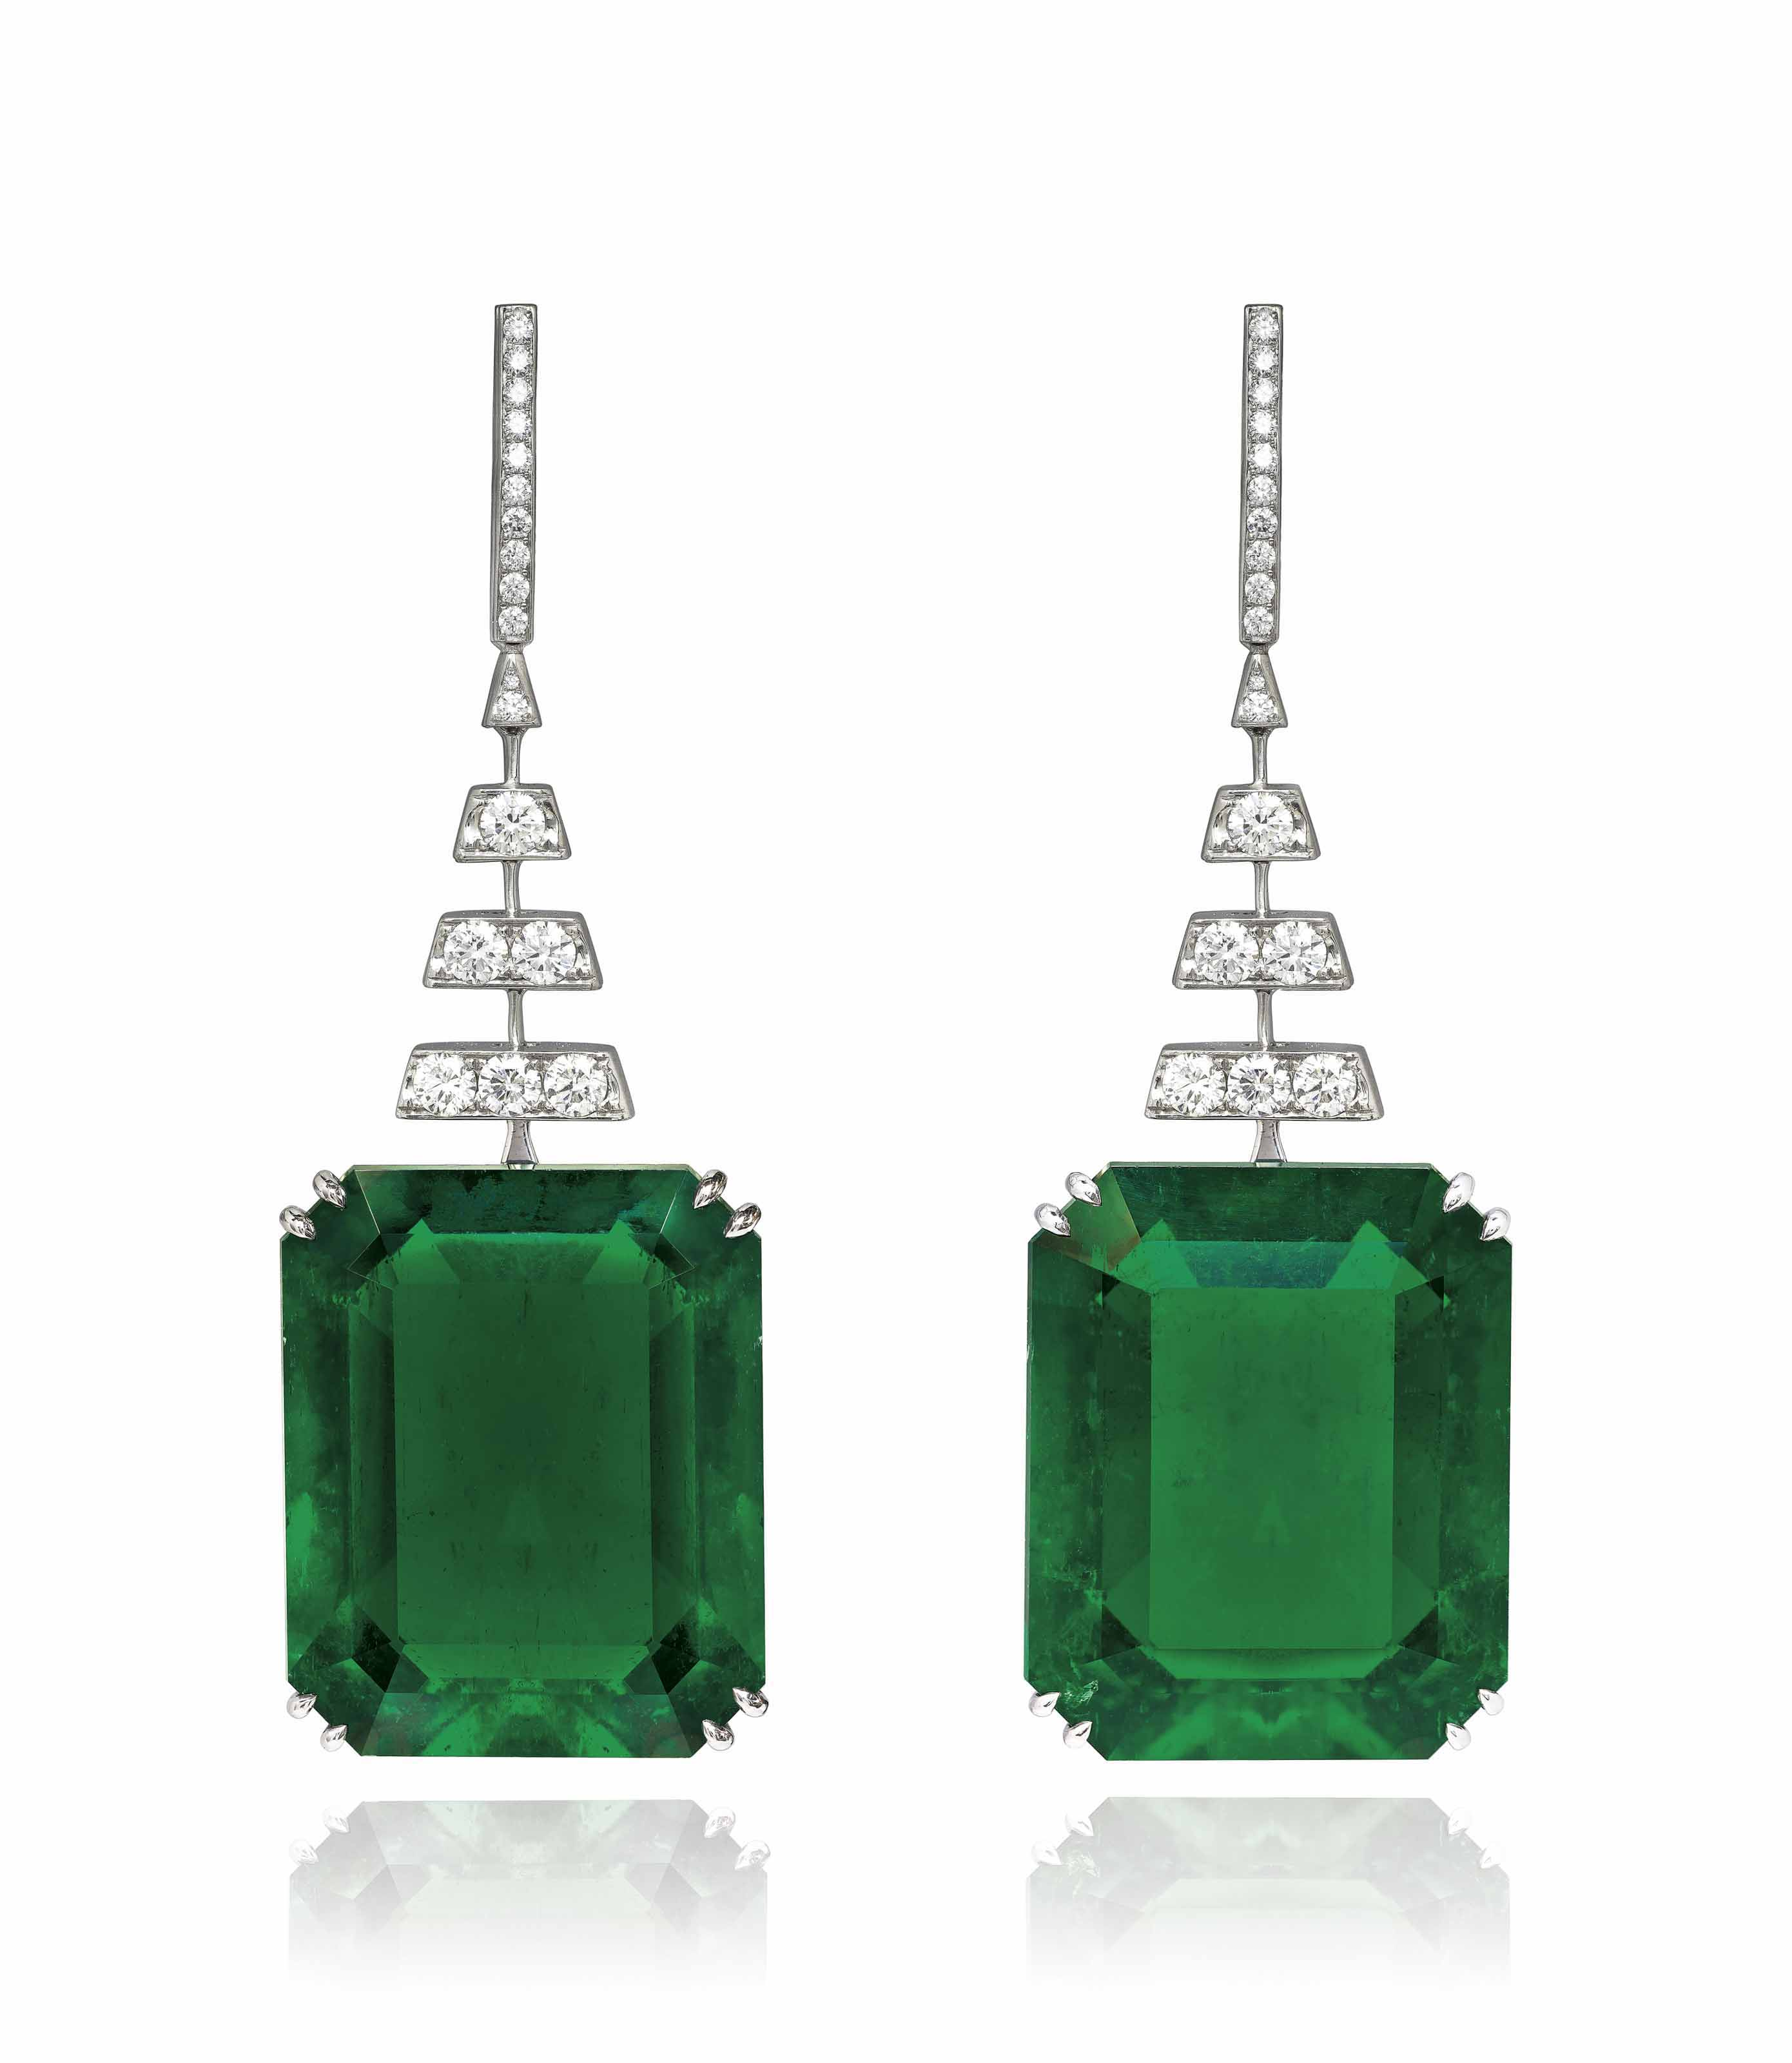 EXCEPTIONAL PAIR OF EMERALD AND DIAMOND EARRINGS